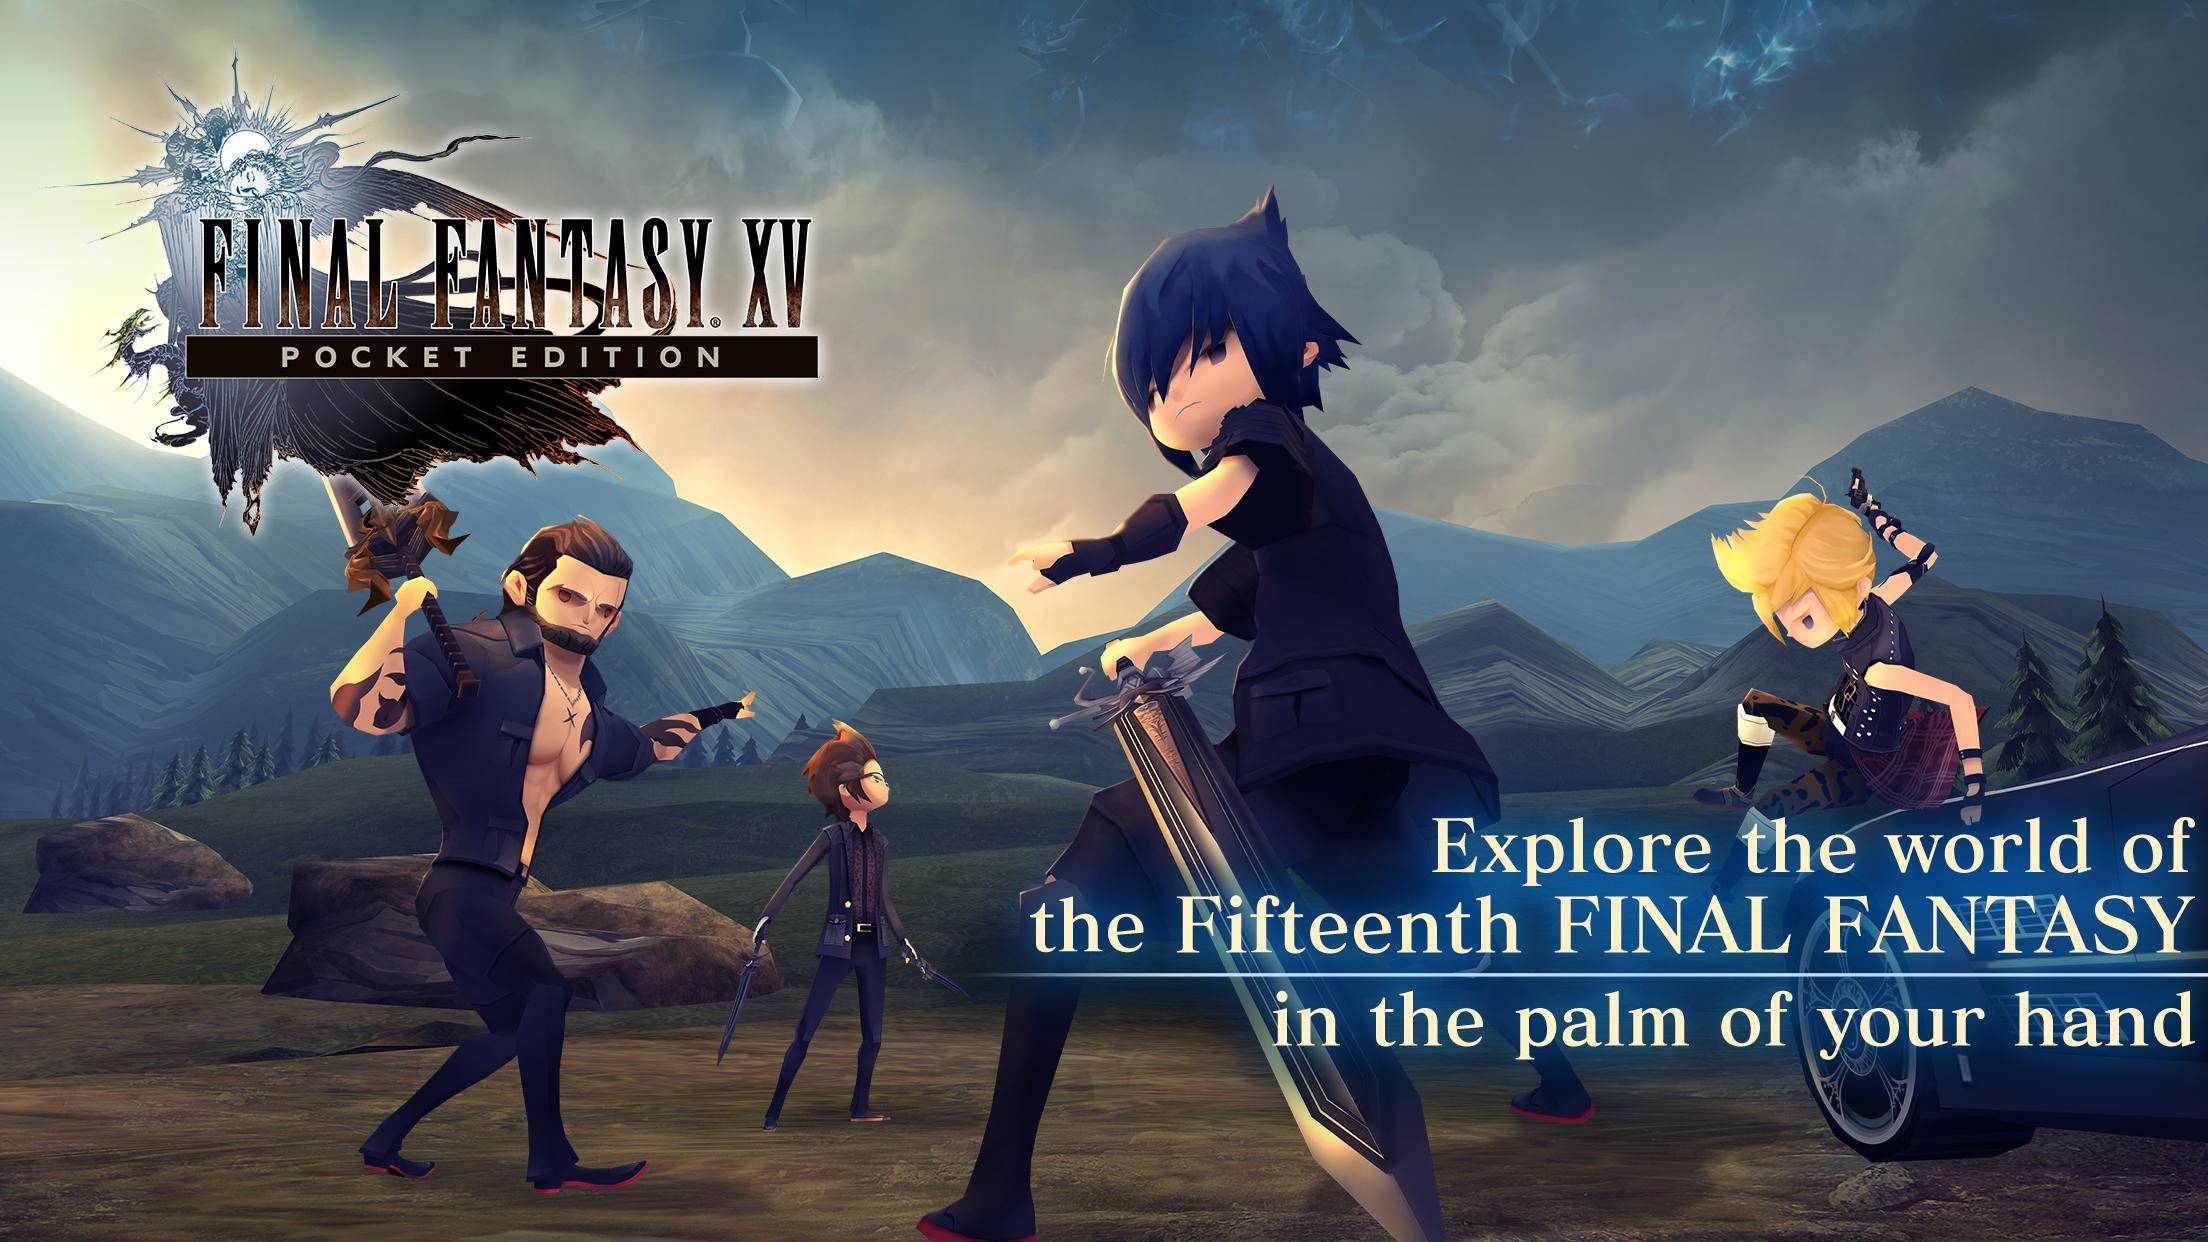 FINAL FANTASY XV POCKET EDITION 1.0.6.631 Screenshot 1